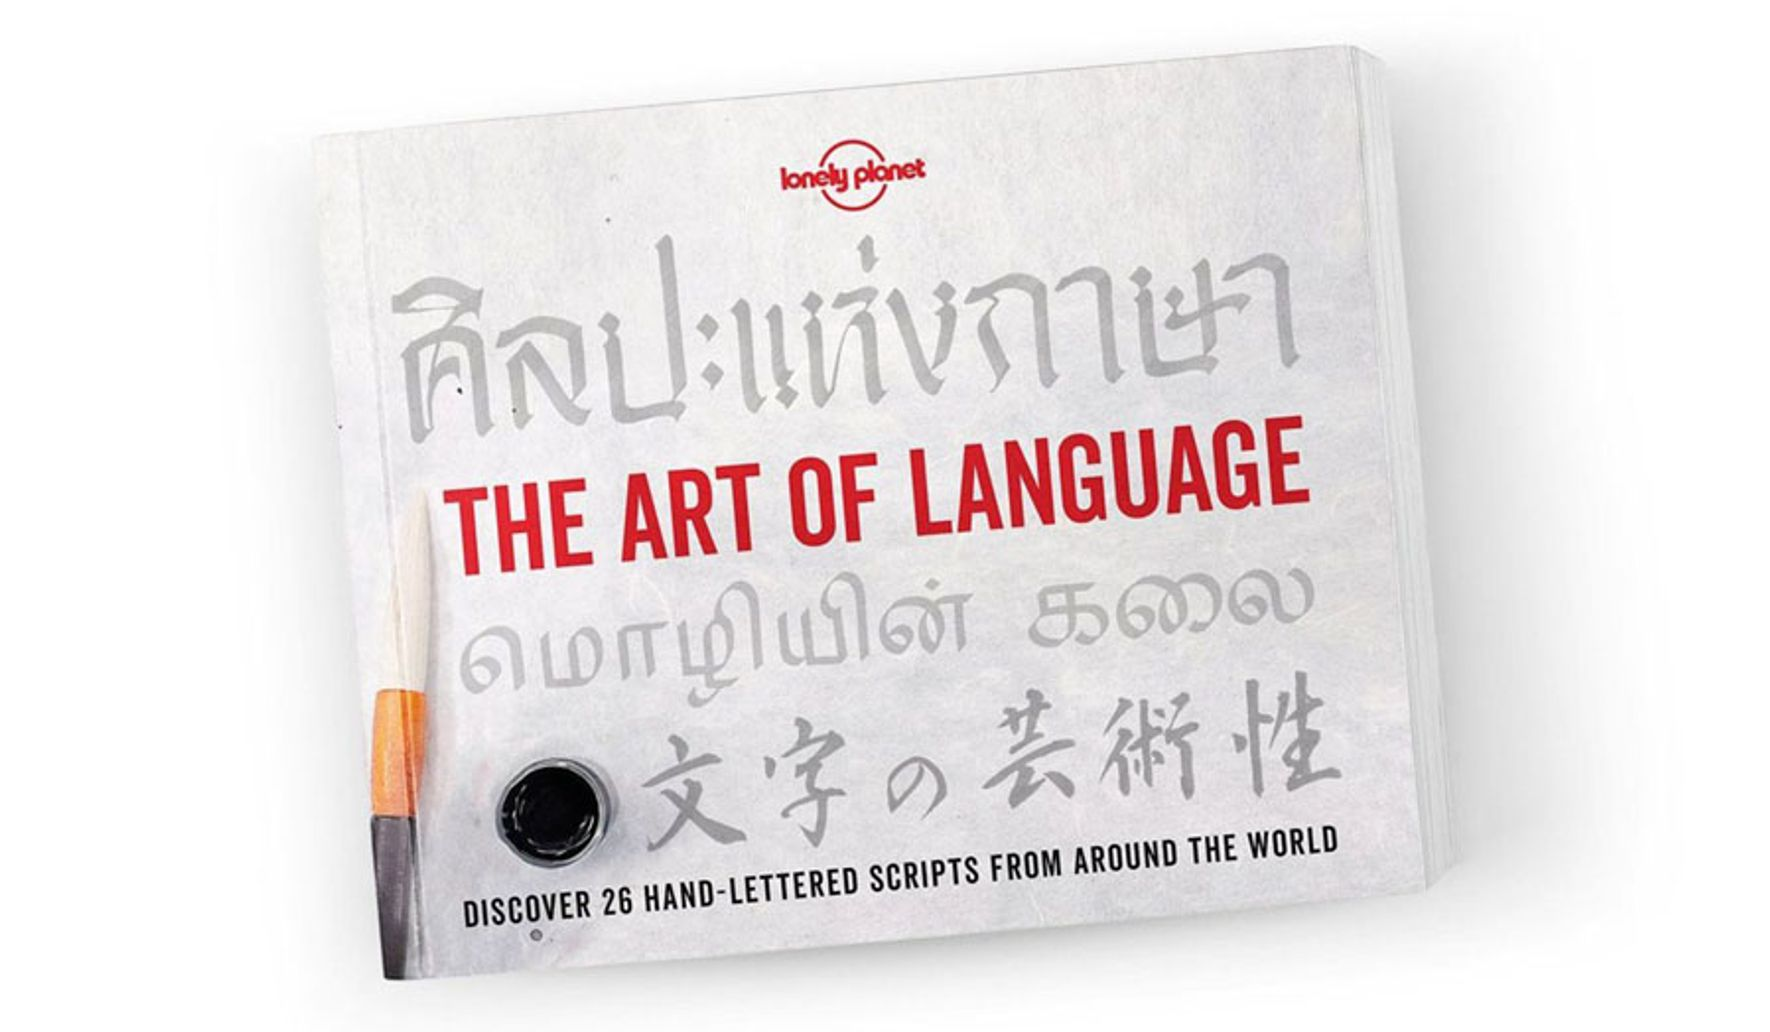 BOOK REVIEW: 'The Art of Language'